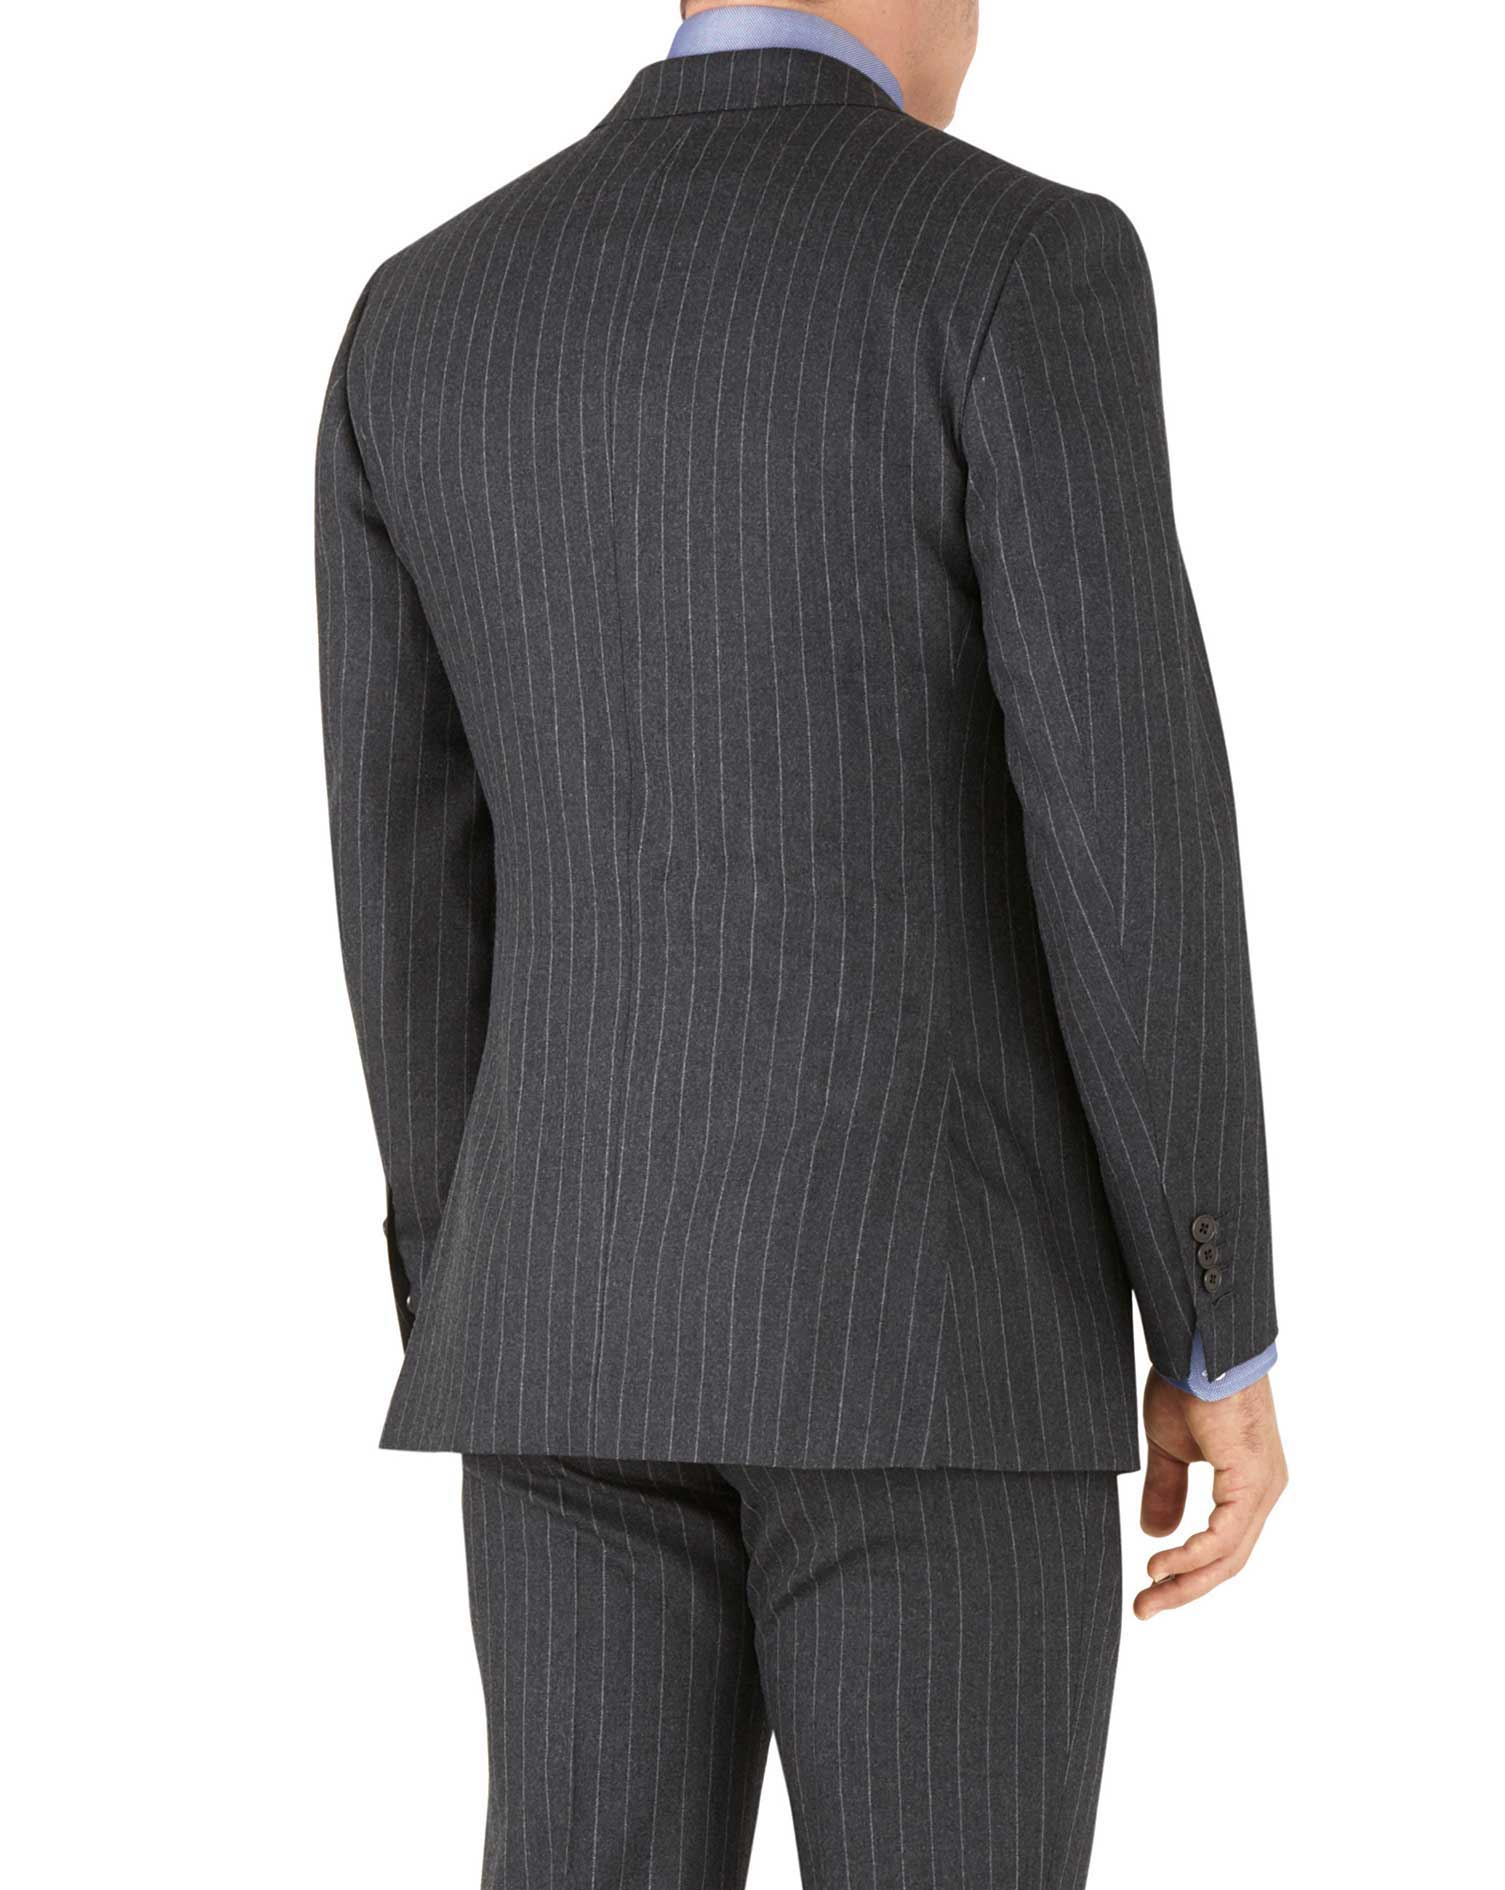 Veste de costume business charcoal en flanelle slim fit avec rayures